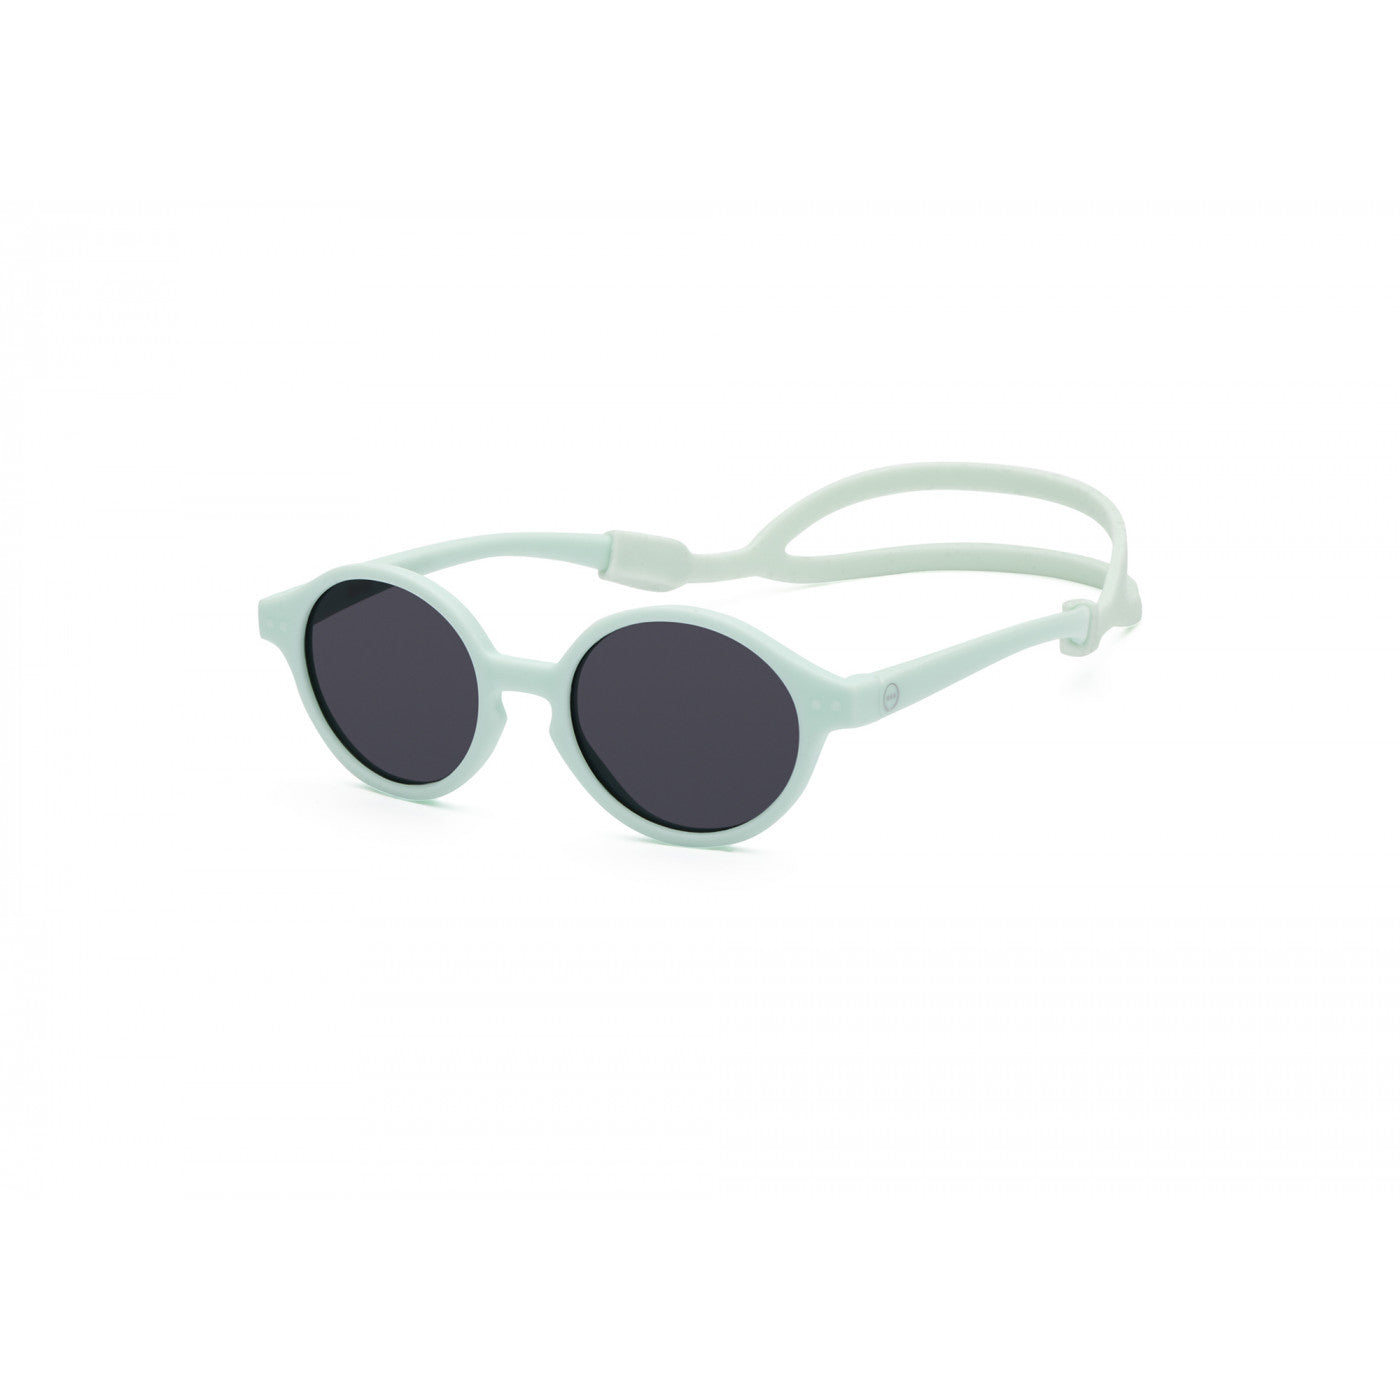 SUN KIDS BABY SUNGLASSES / 12-36 MONTHS / SKY BLUE